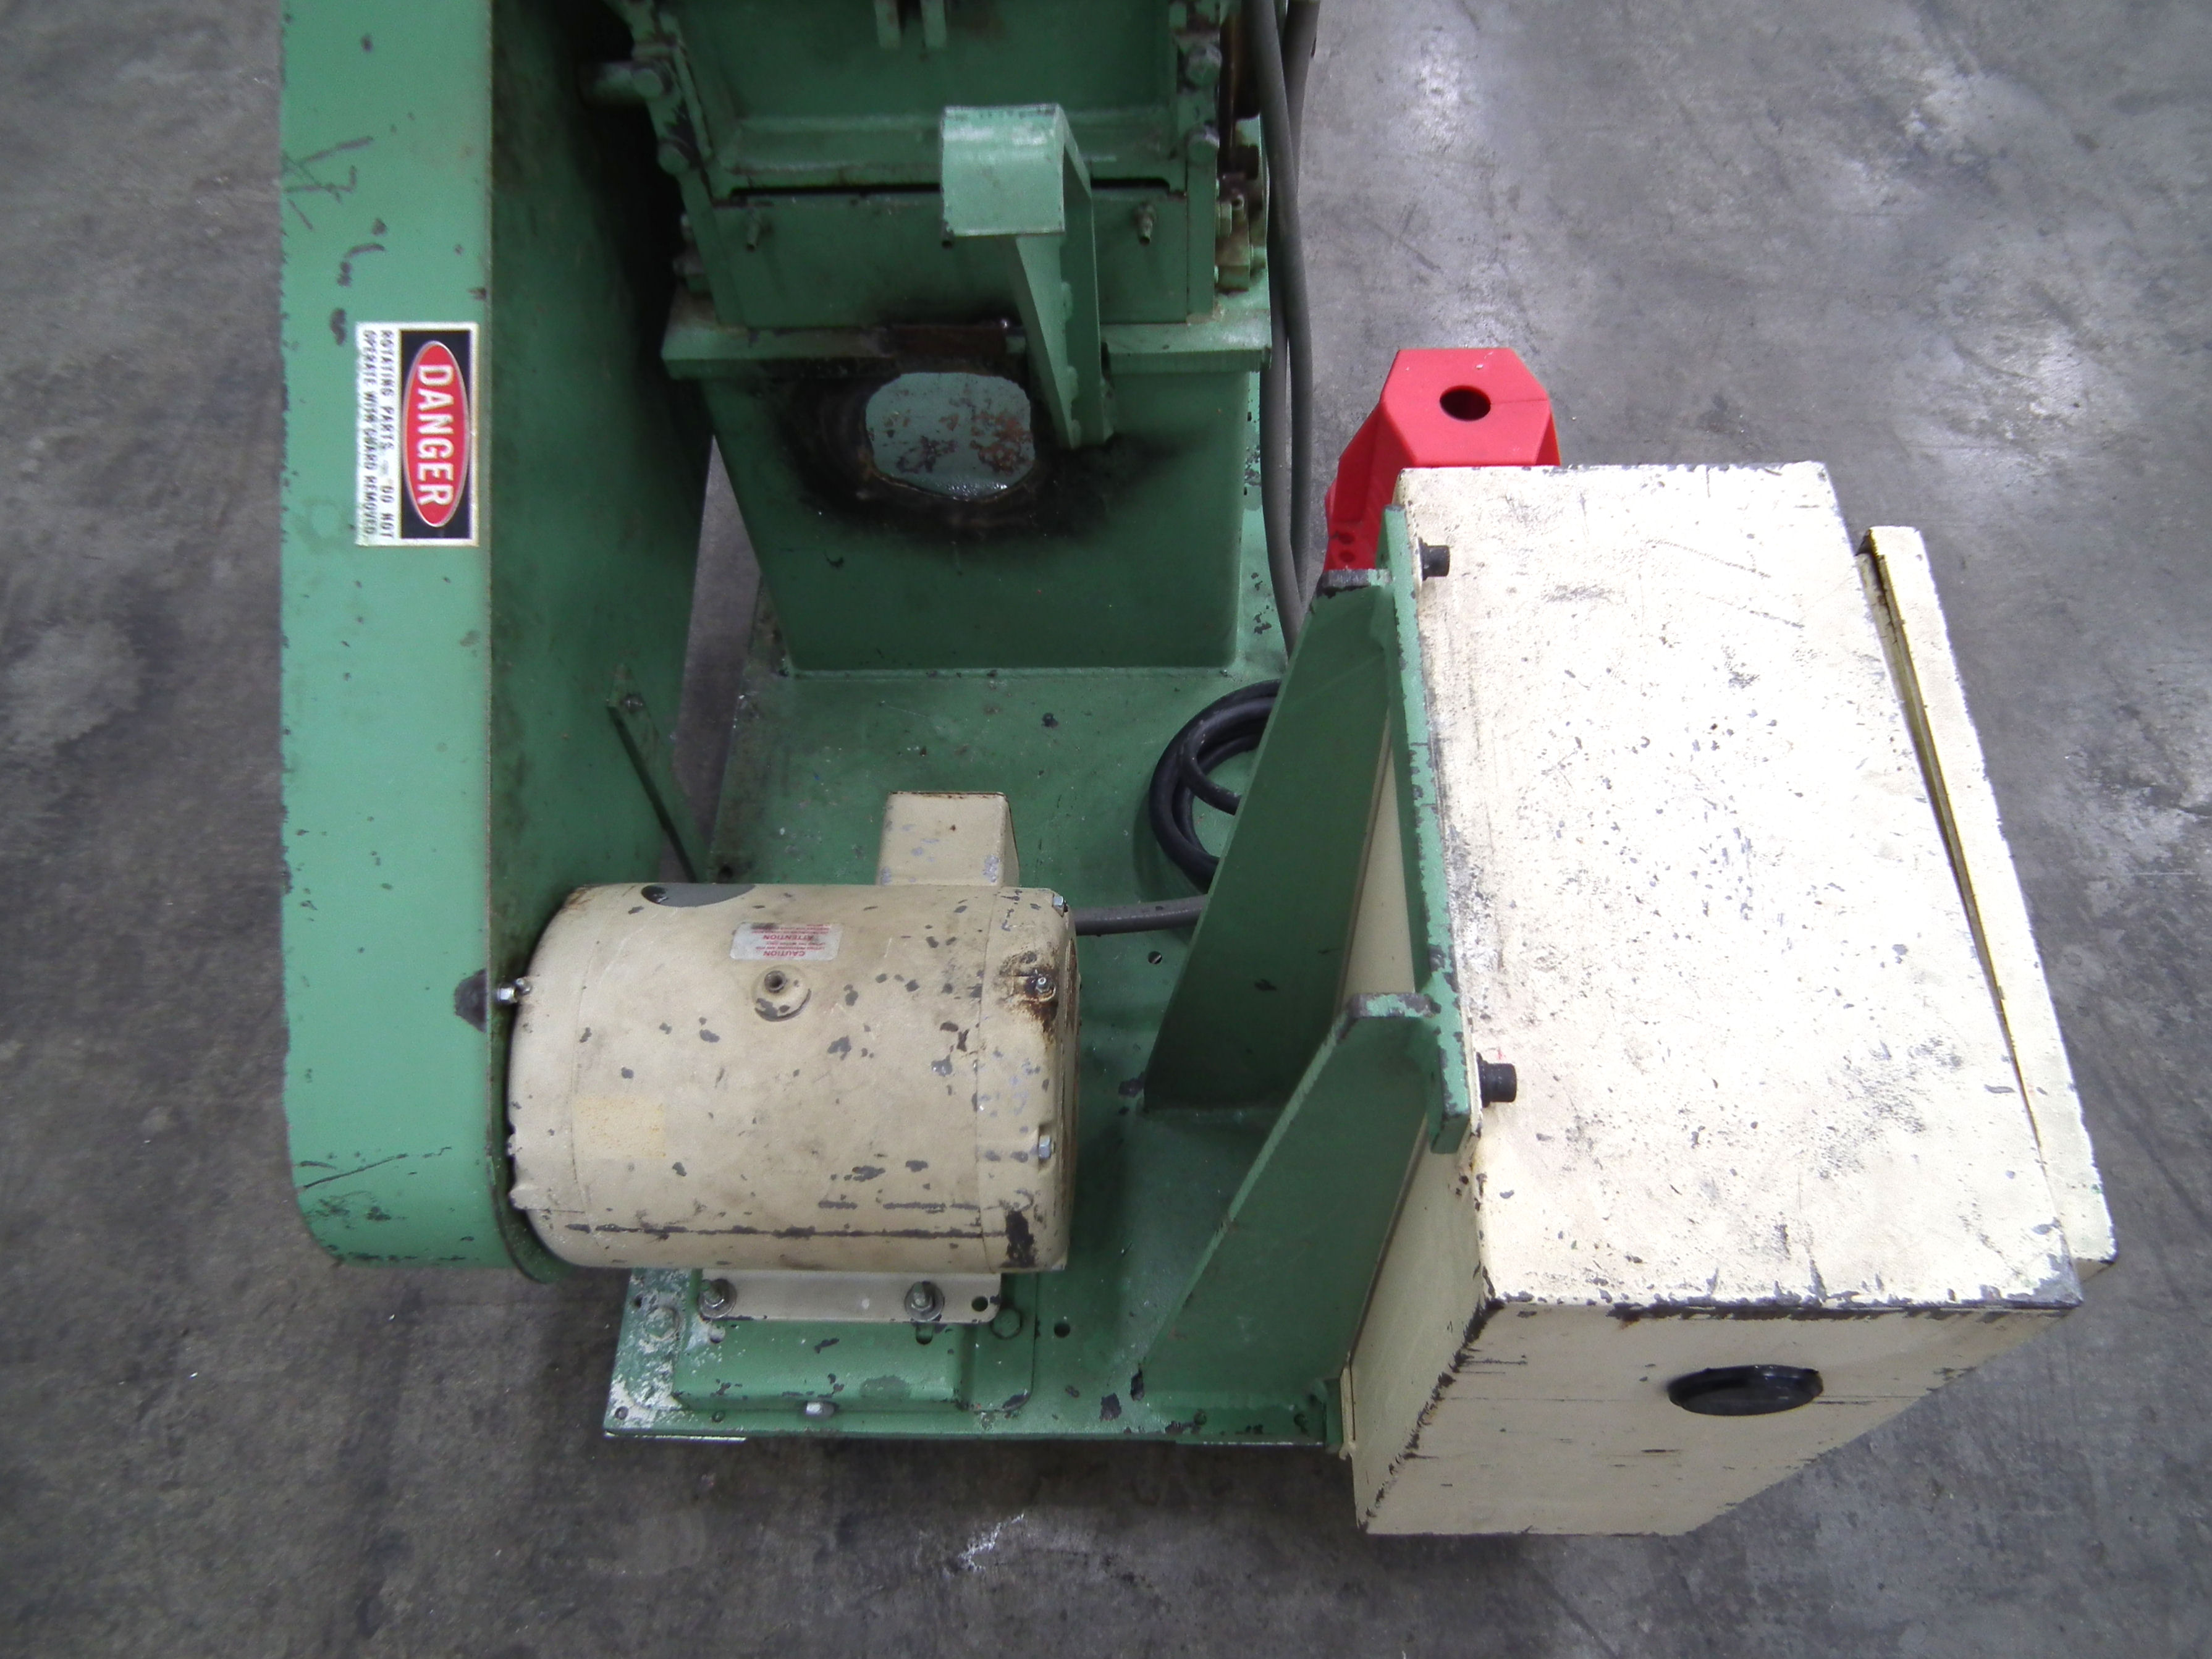 Ball and Jewell 1212SC Plastic Grinder B2811 - Image 7 of 10